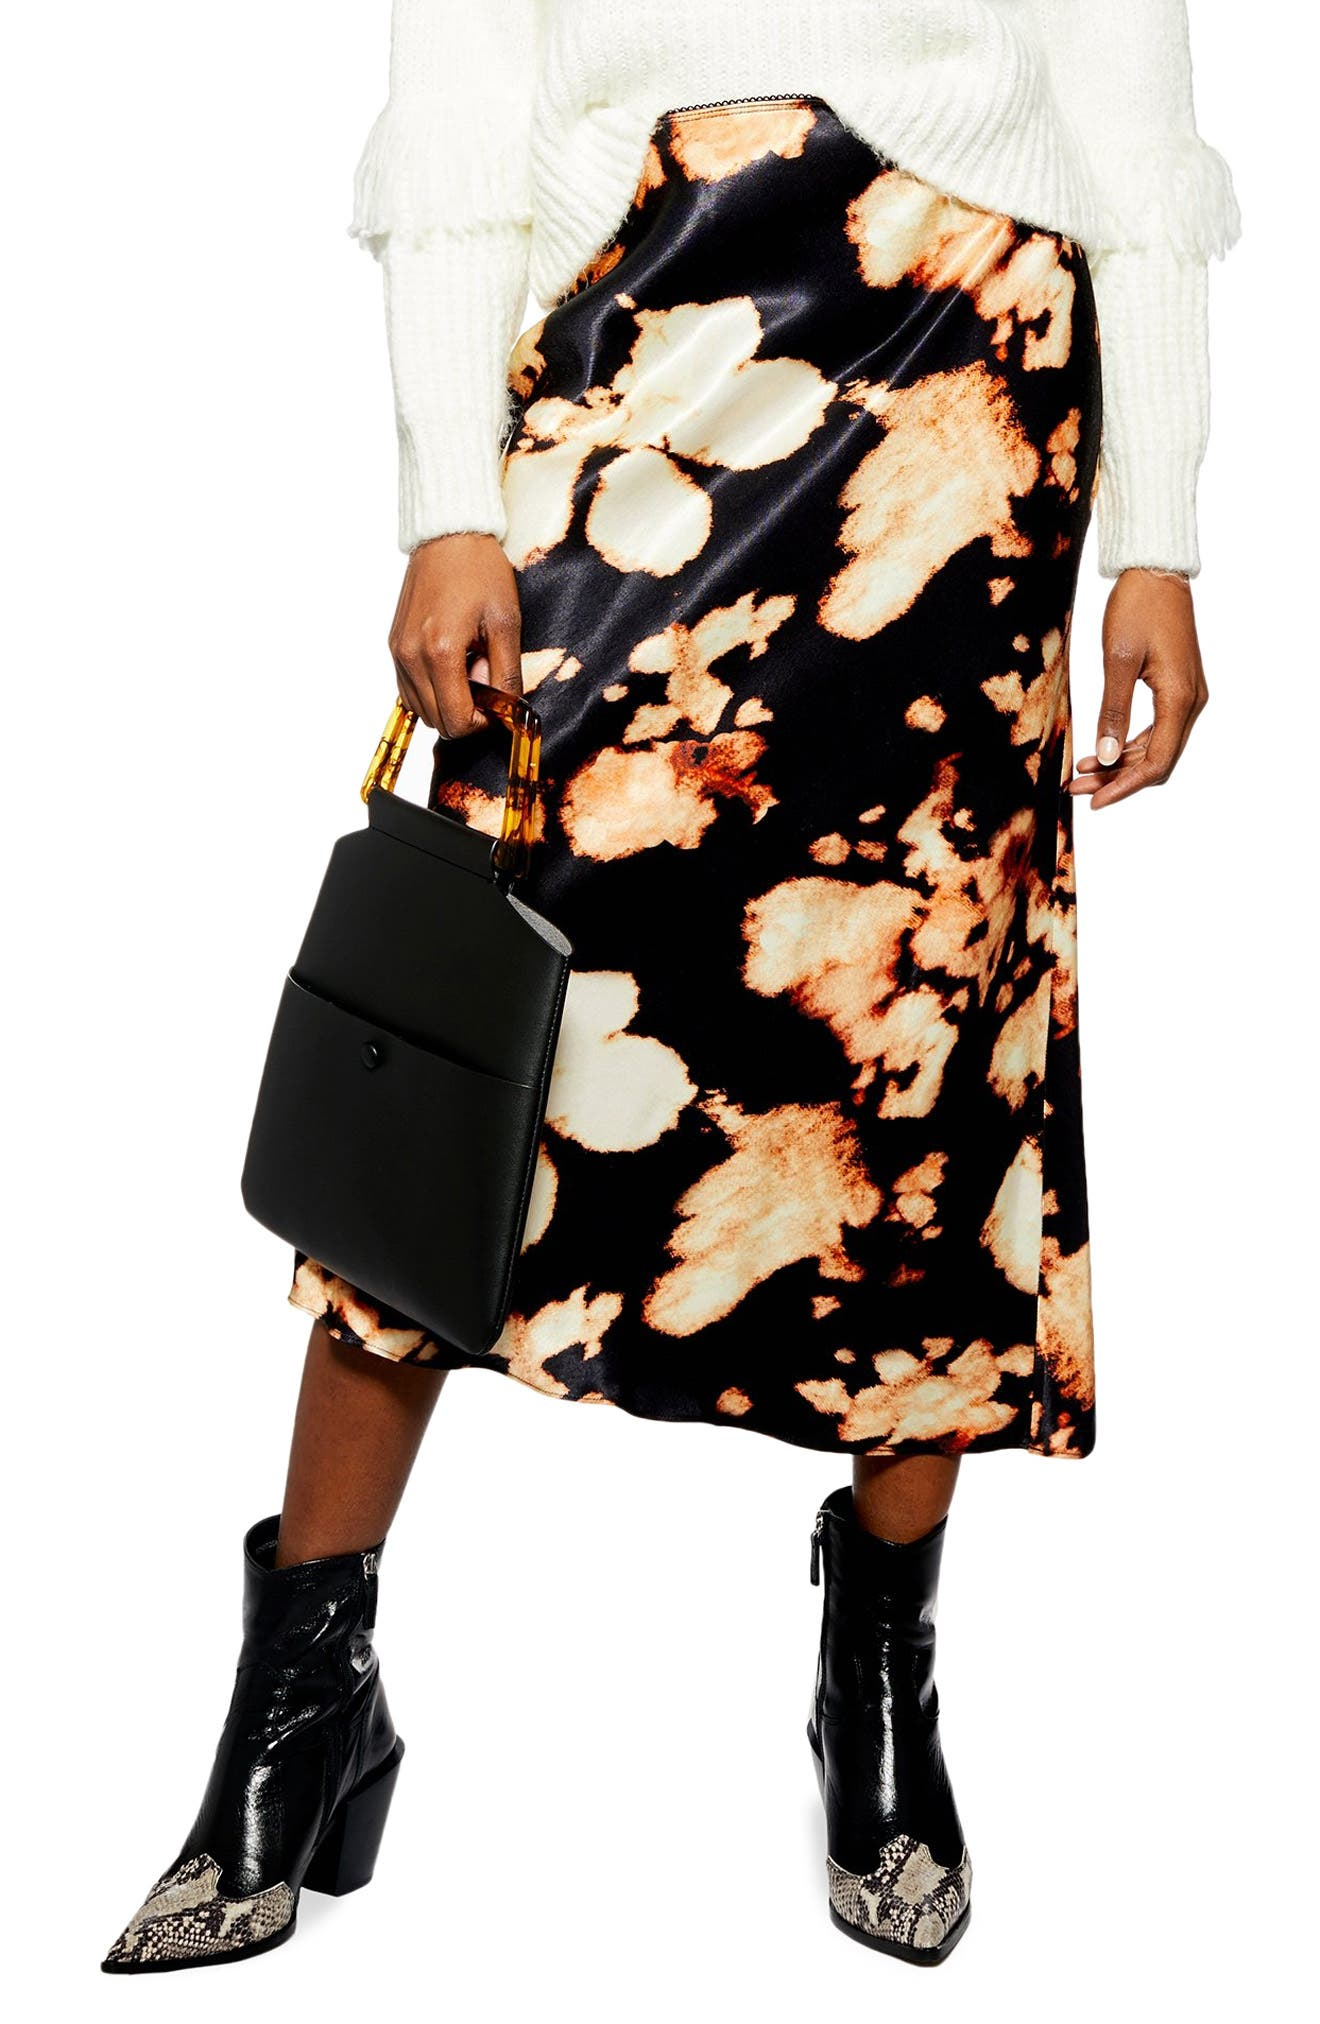 Topshop Tie Dye Bias Midi Skirt, US (fits like 6-8) - Black